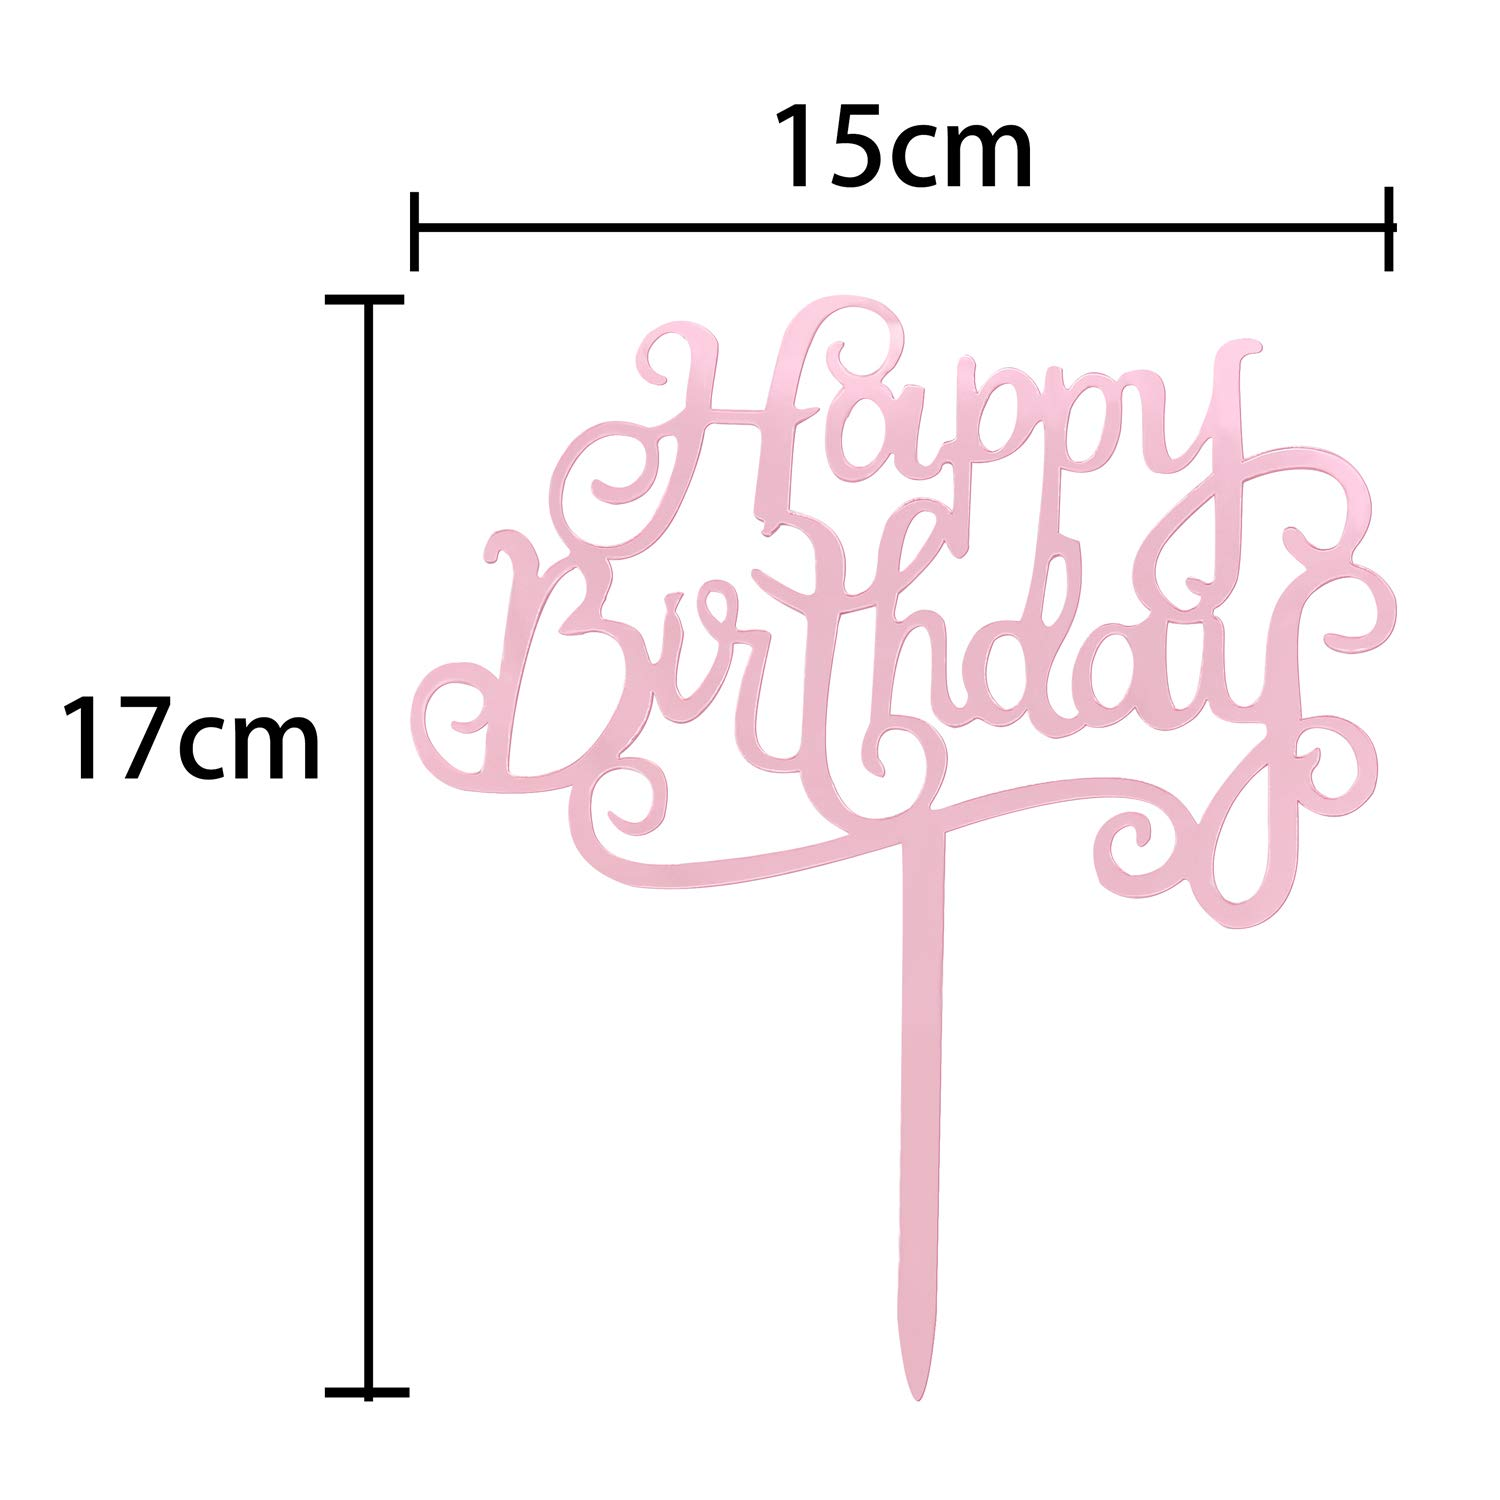 Rose Gold Happy Birthday Cake Toppers Pack Acrylic Glitter Star Fans Confetti Balloon Cupcake Party Decor Decorations (J)